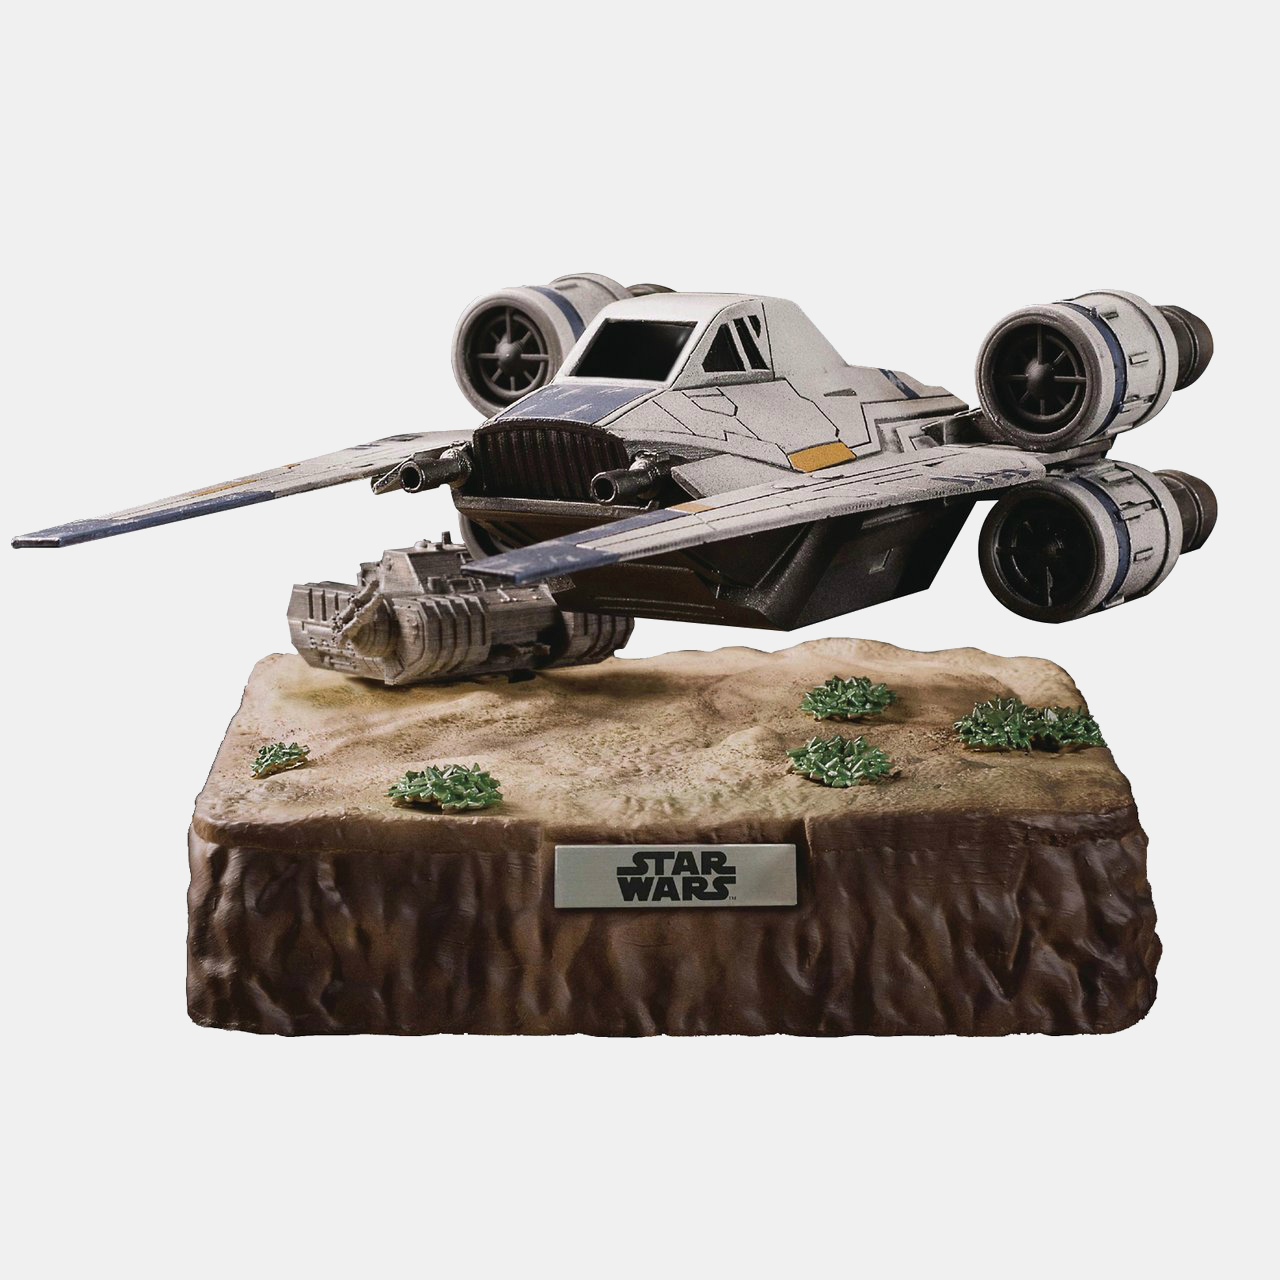 Star Wars: Rogue One U-Wing Magnetic Floating Version Vehicle